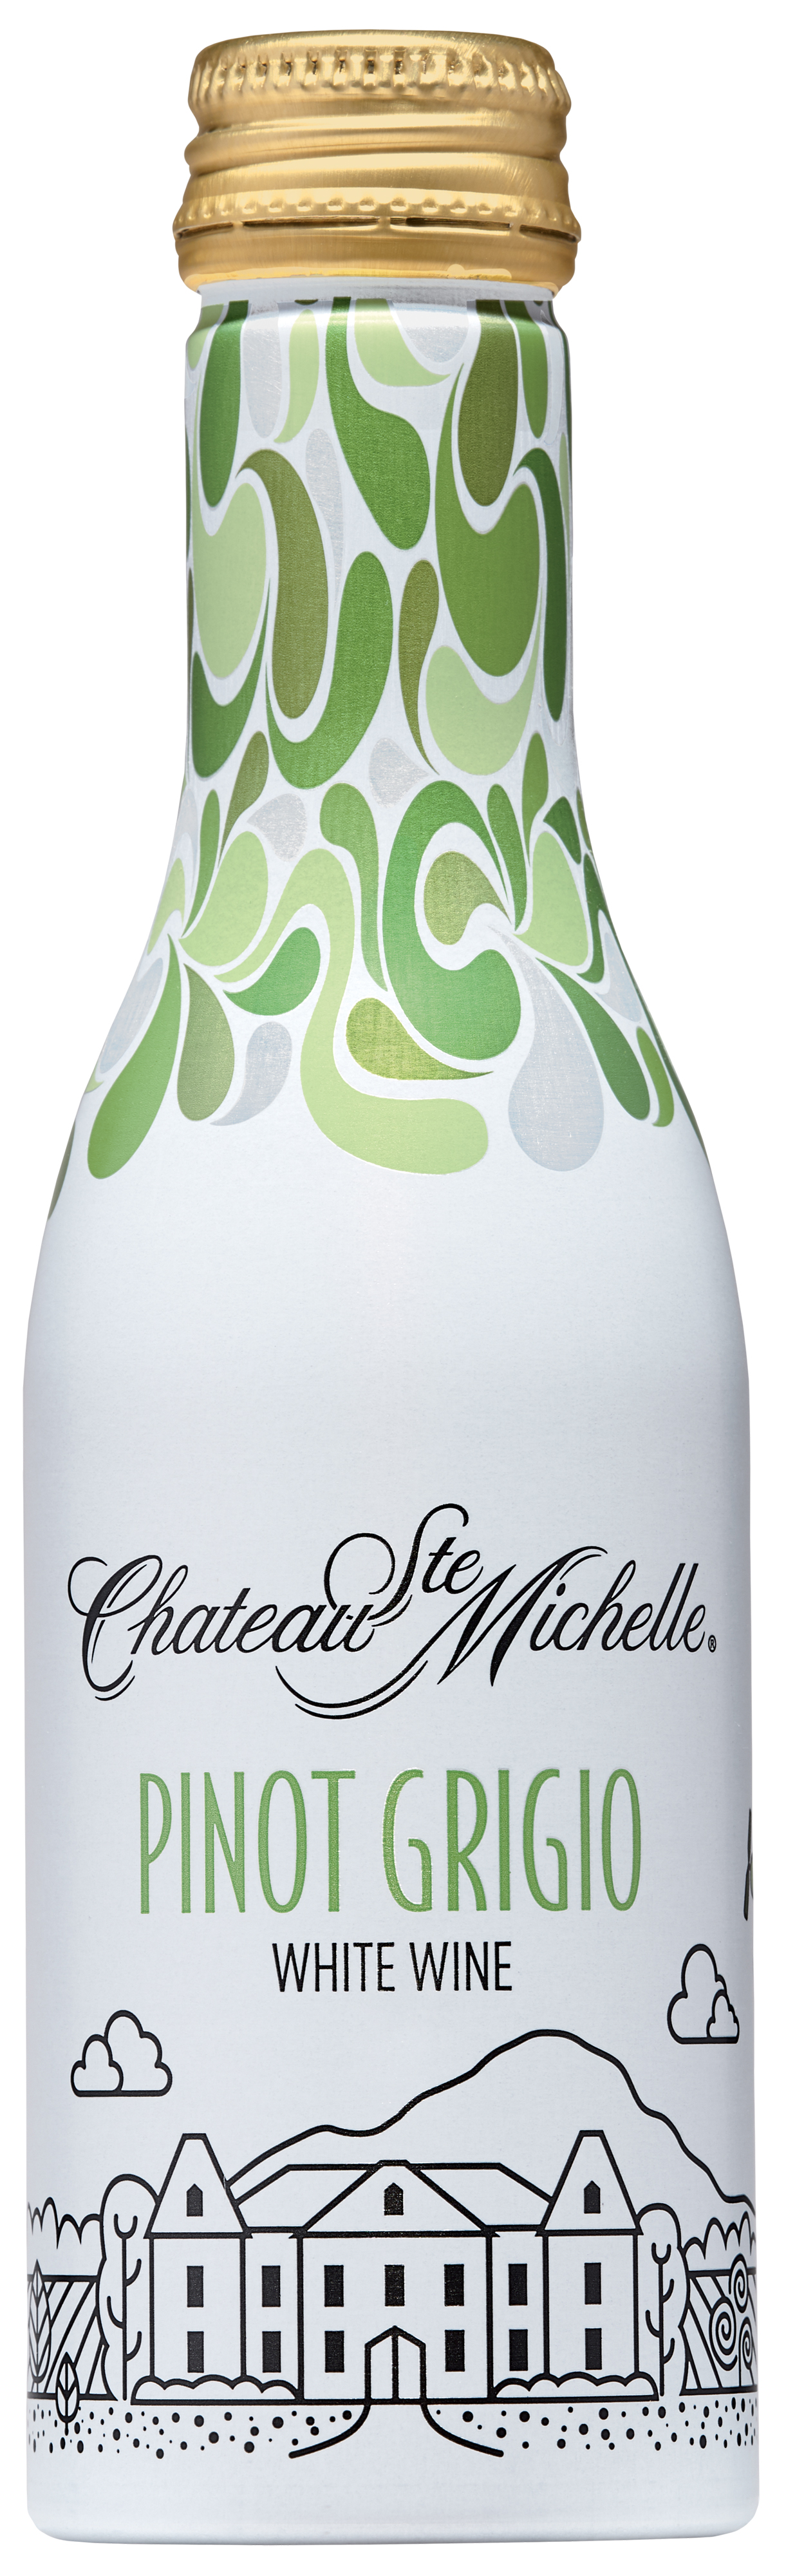 Chateau Ste. Michelle Aluminum Bottles - Pinot Grigio (Image: Courtesy of{ }Chateau Ste. Michelle Winery)